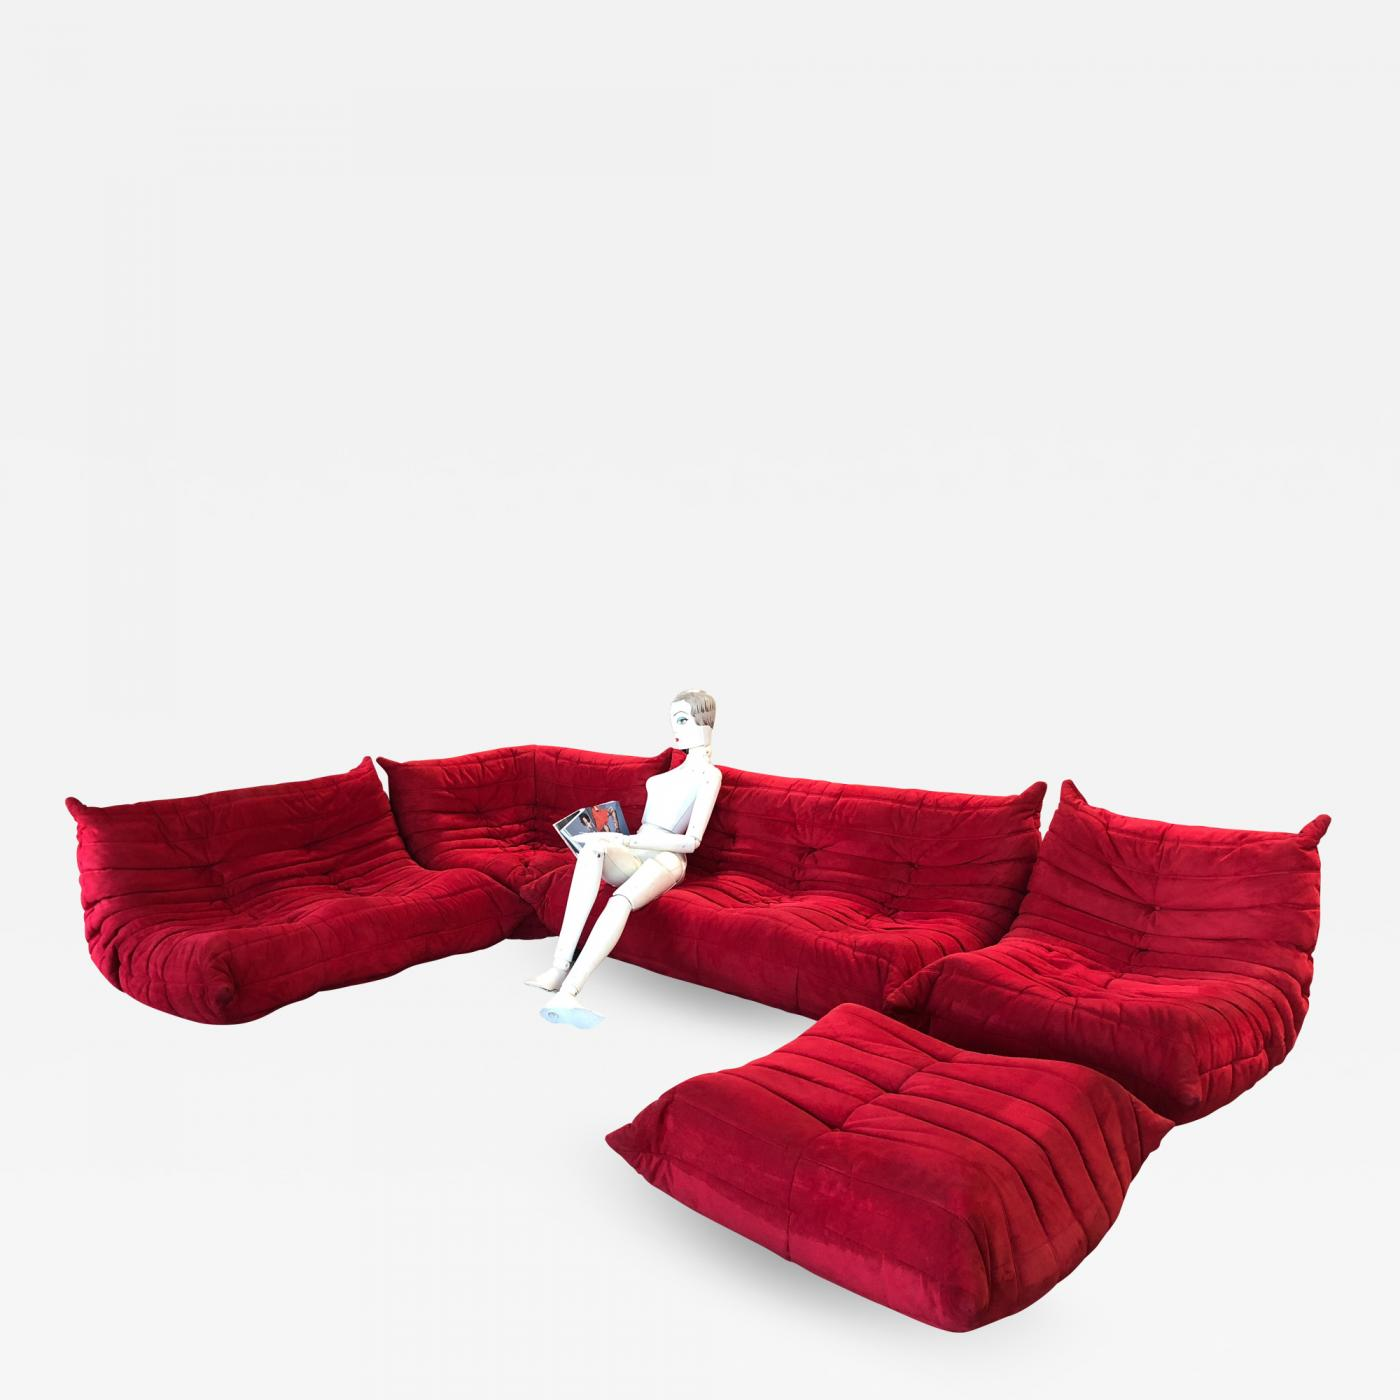 Michel Ducaroy Togo Living Room Set By Michel Ducaroy For Ligne